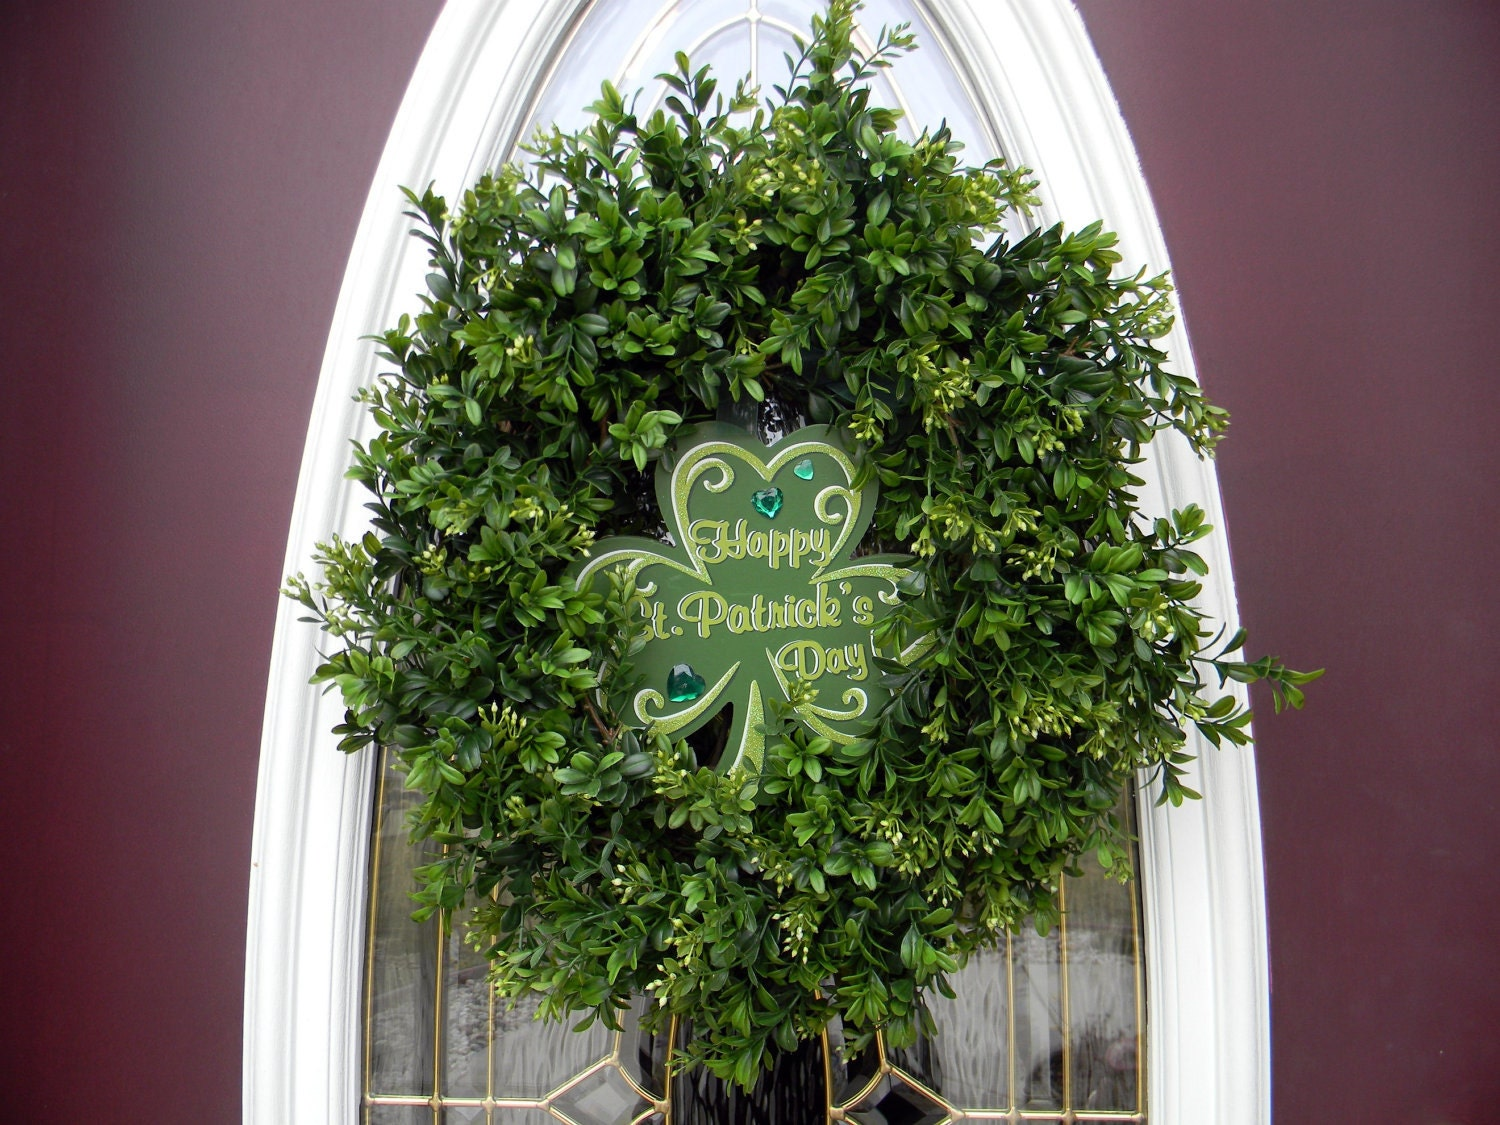 St Patricks Day Grapevine Boxwood Door Wreath. Two Wreaths In One